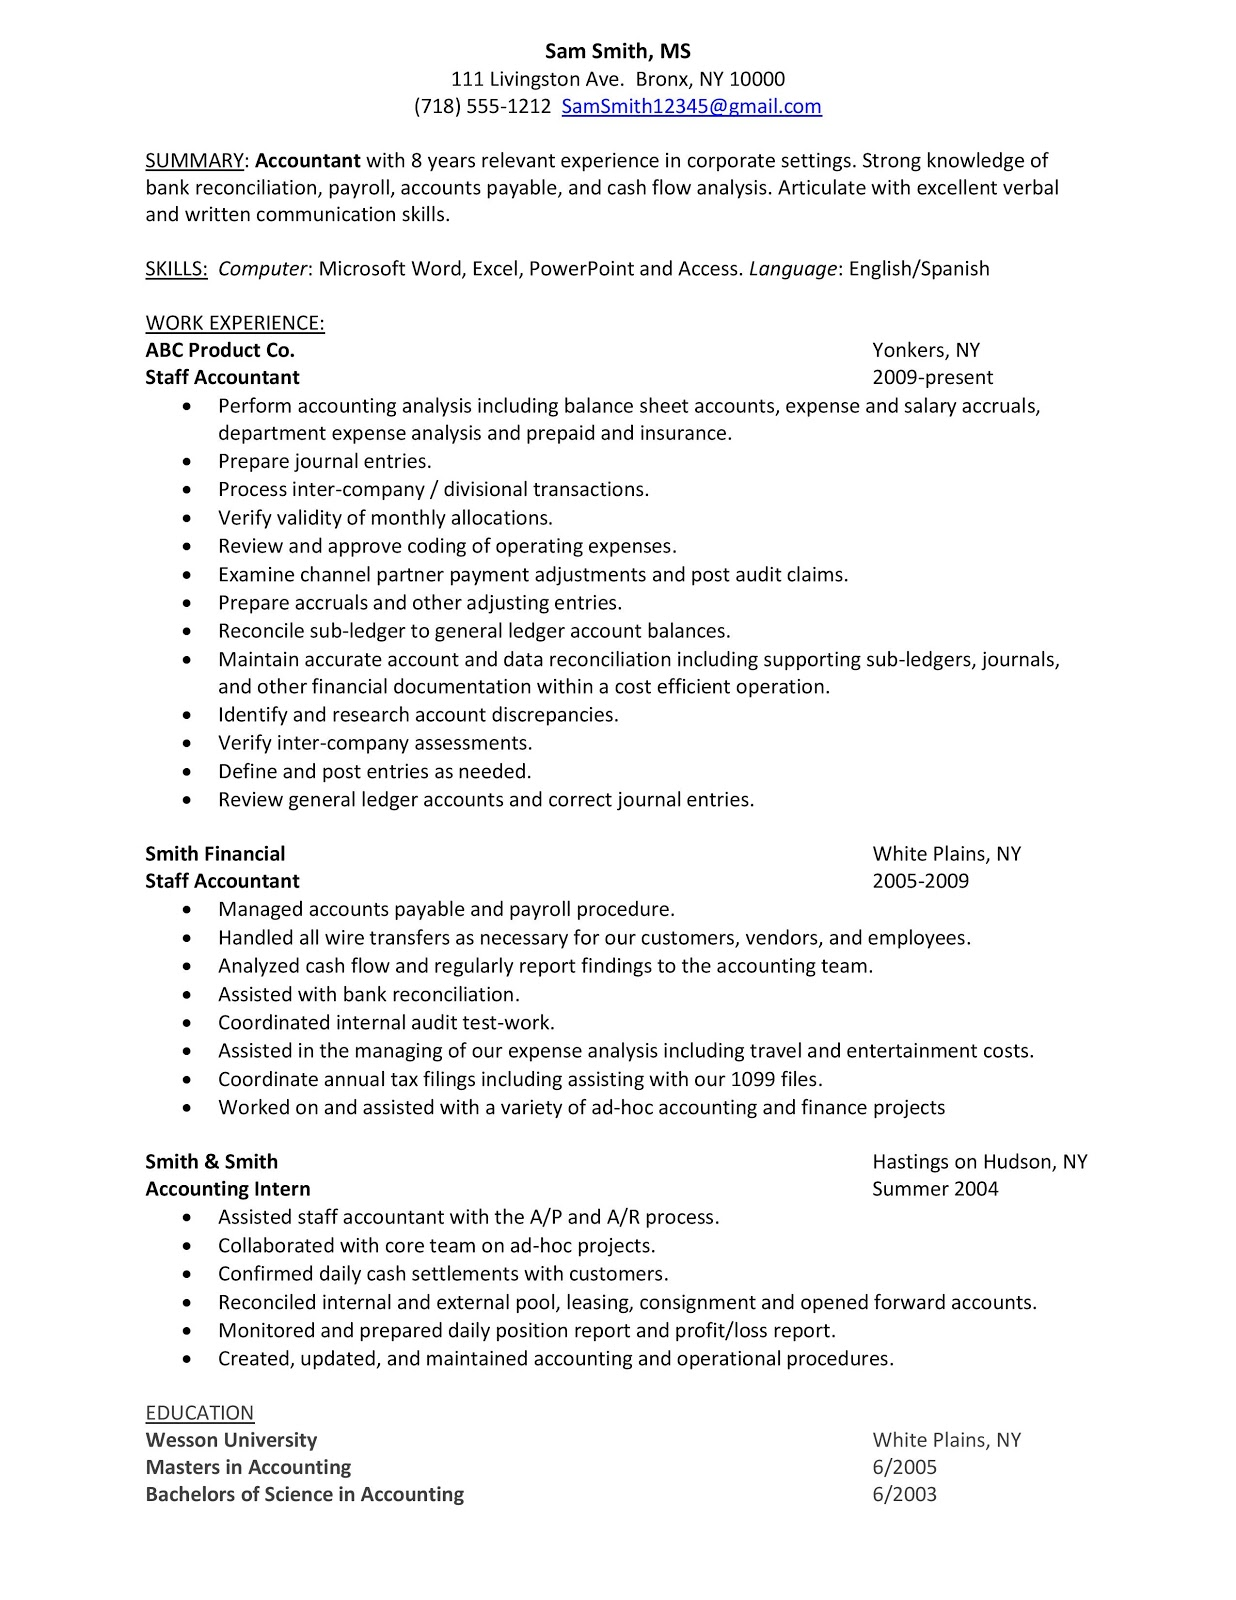 tax assistant job description